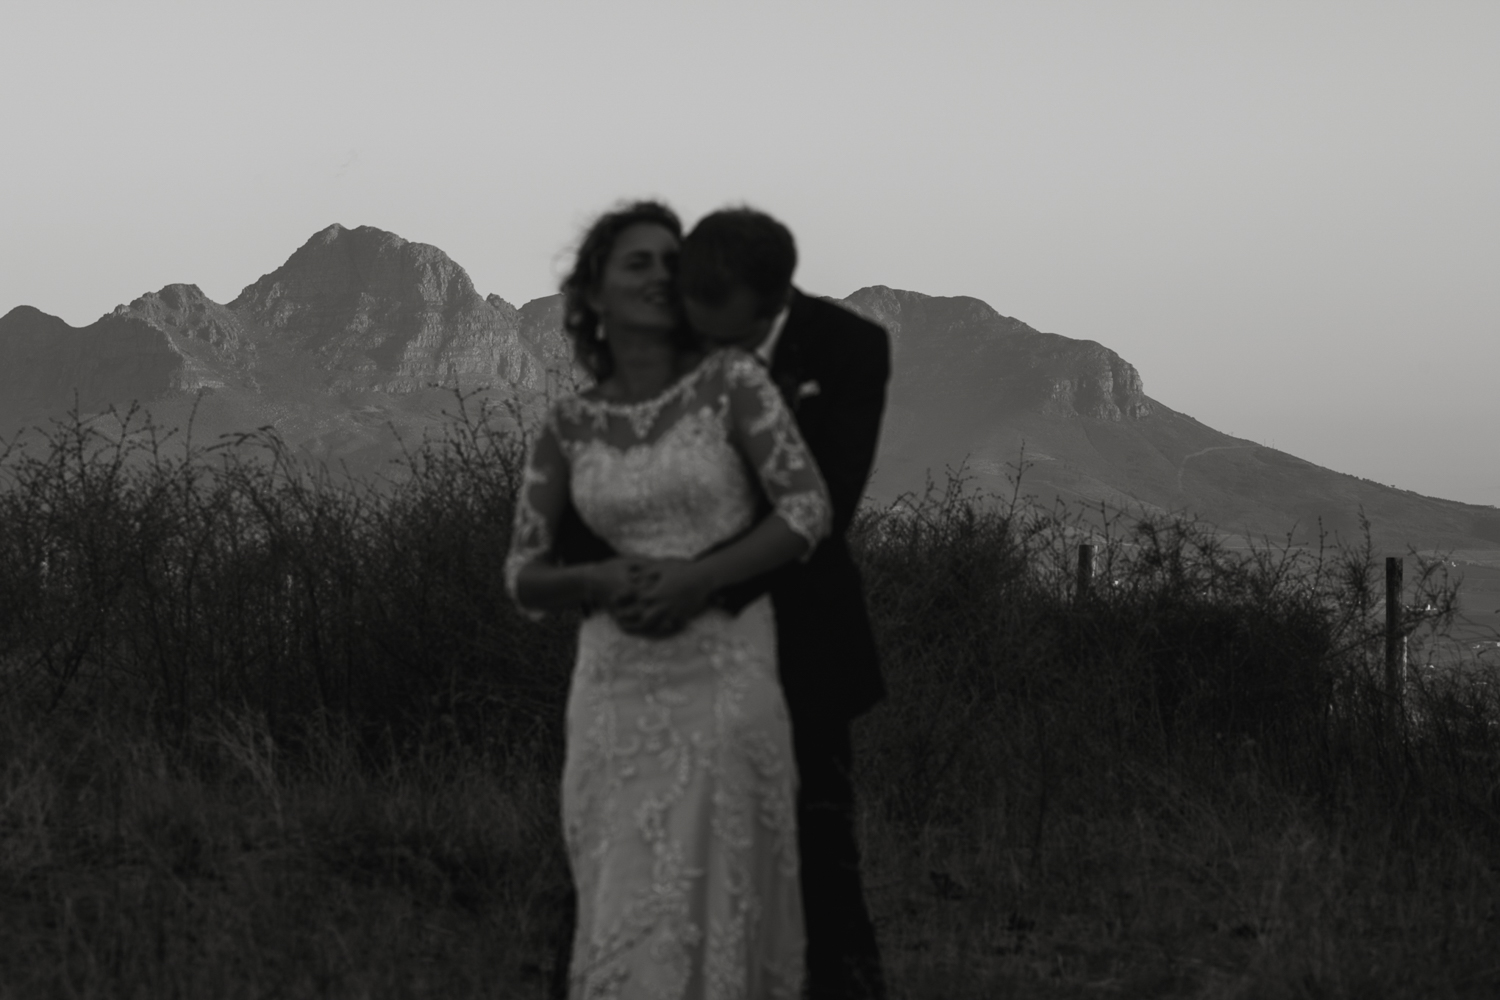 heisvisual-wedding-photographers-documentary-stellenbosch-south-africa024.jpg